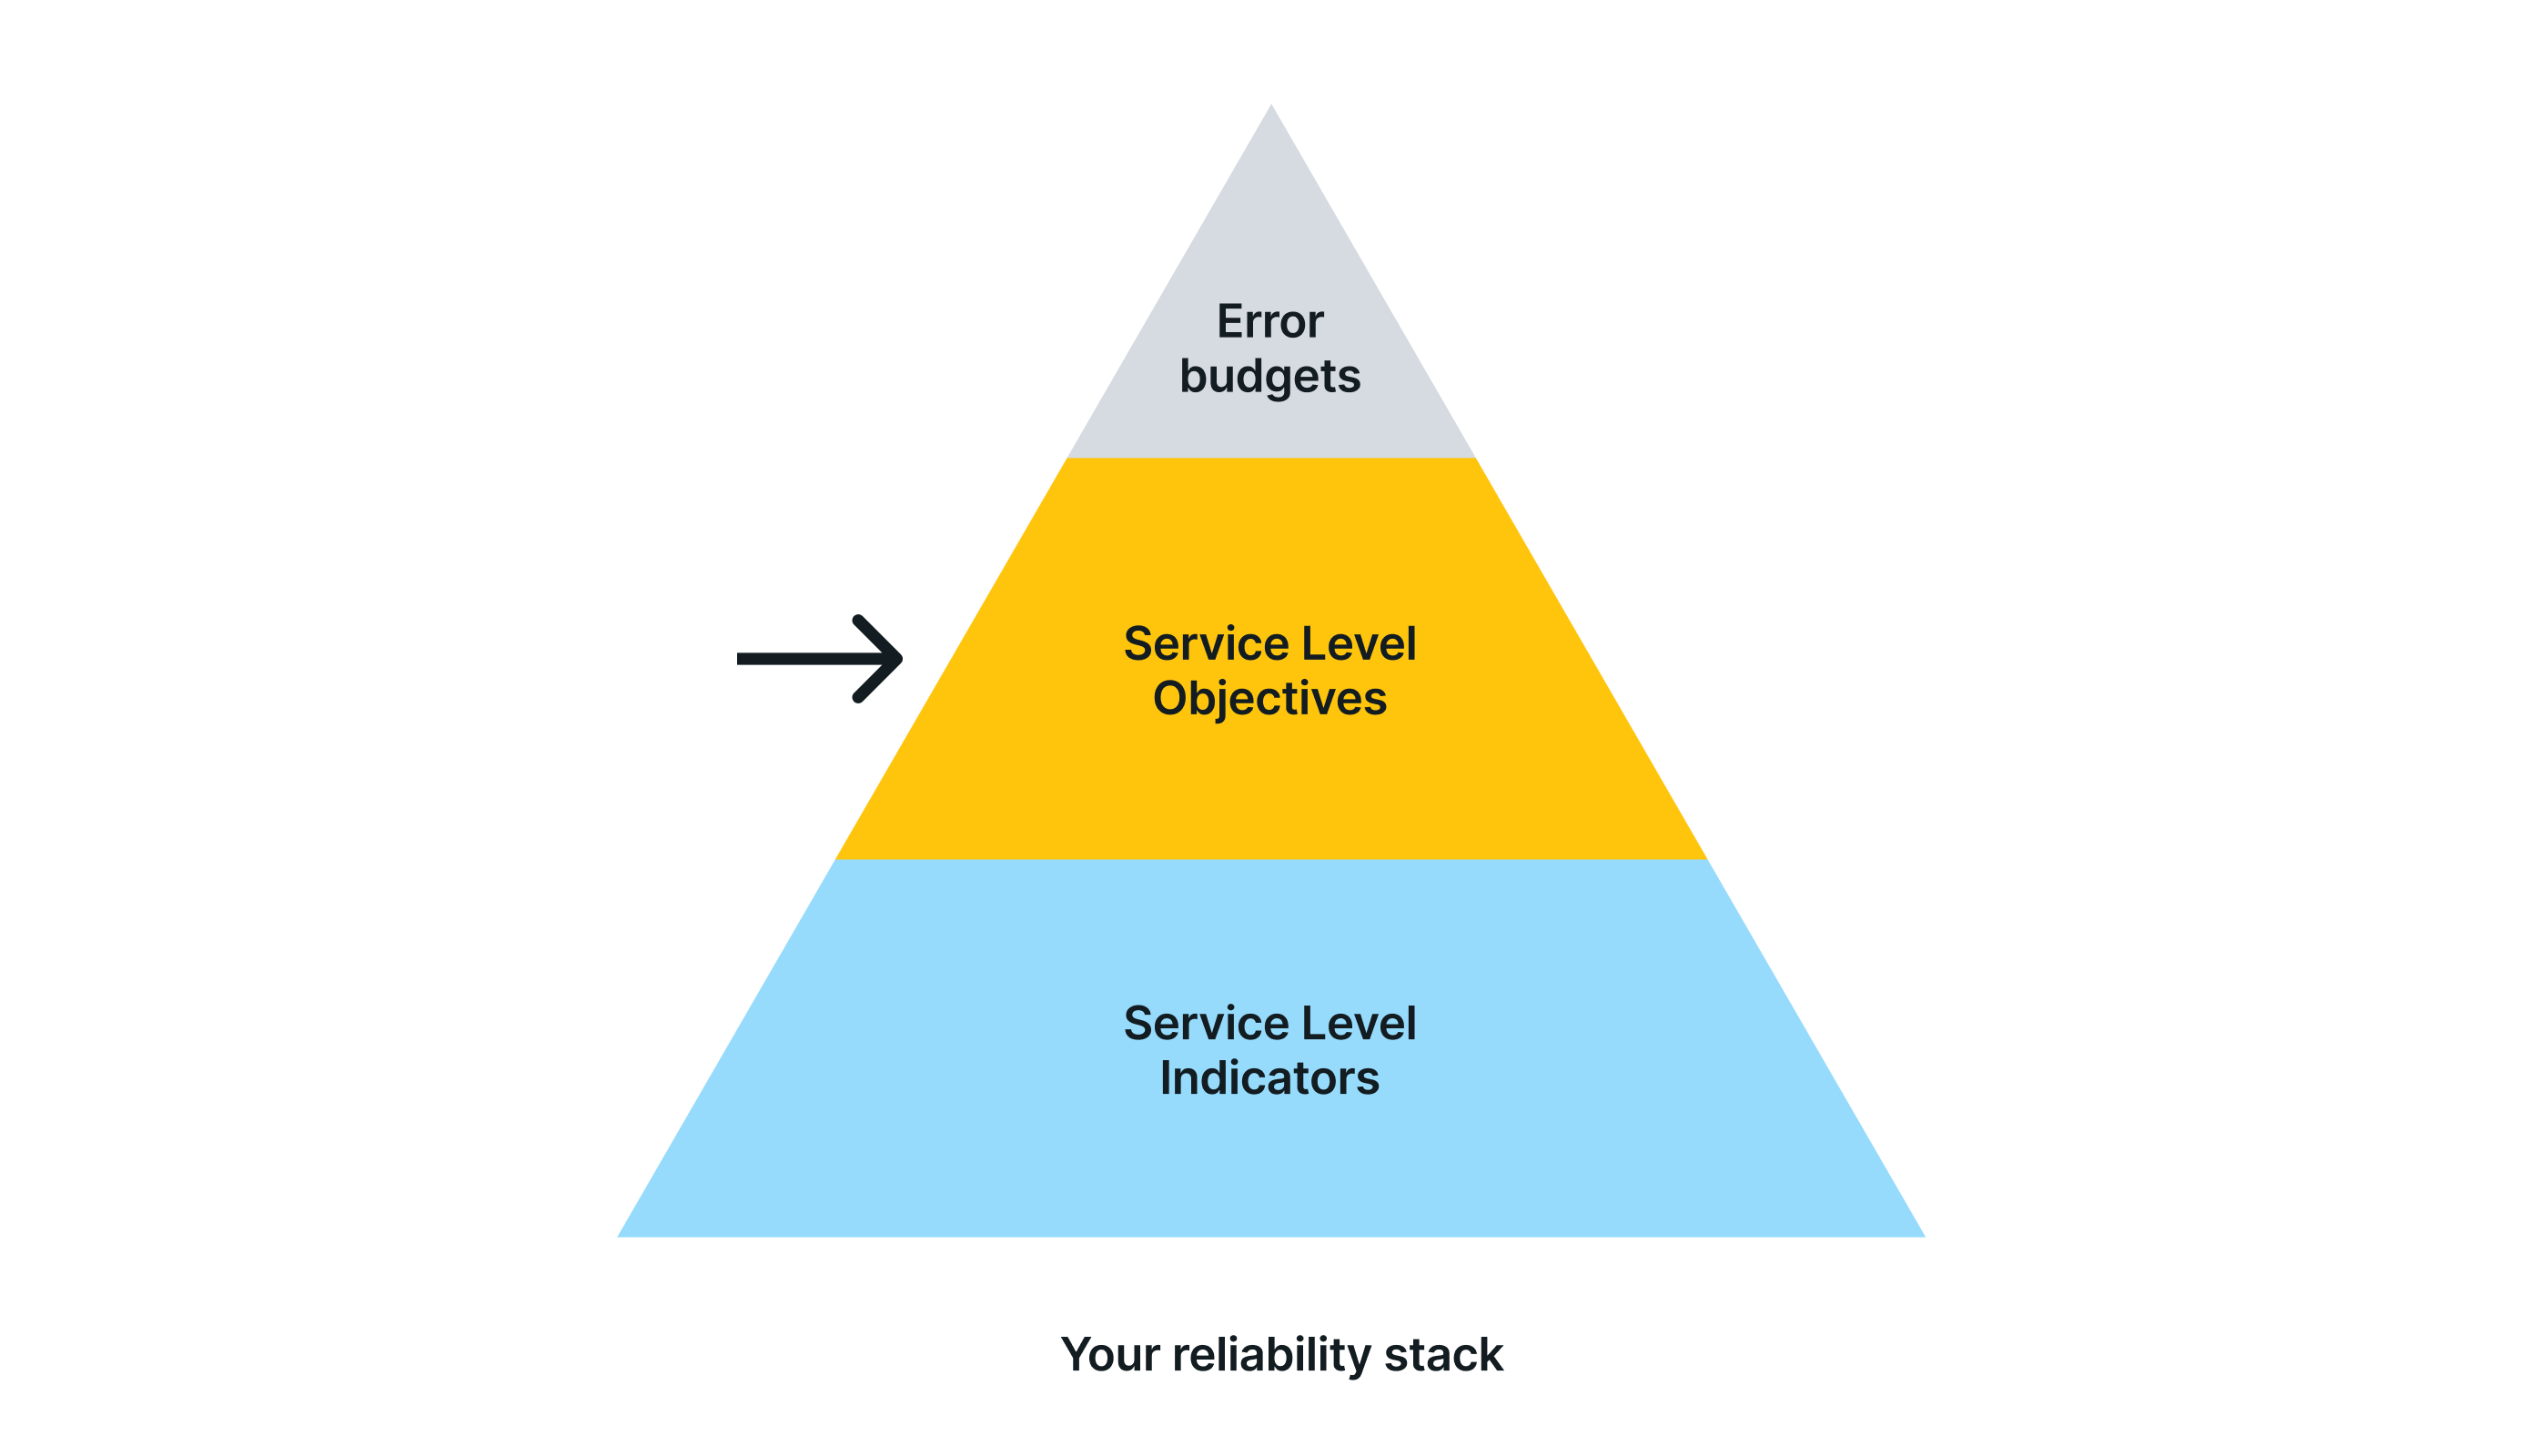 Service Level Objectives (SLOs) on your reliability stack